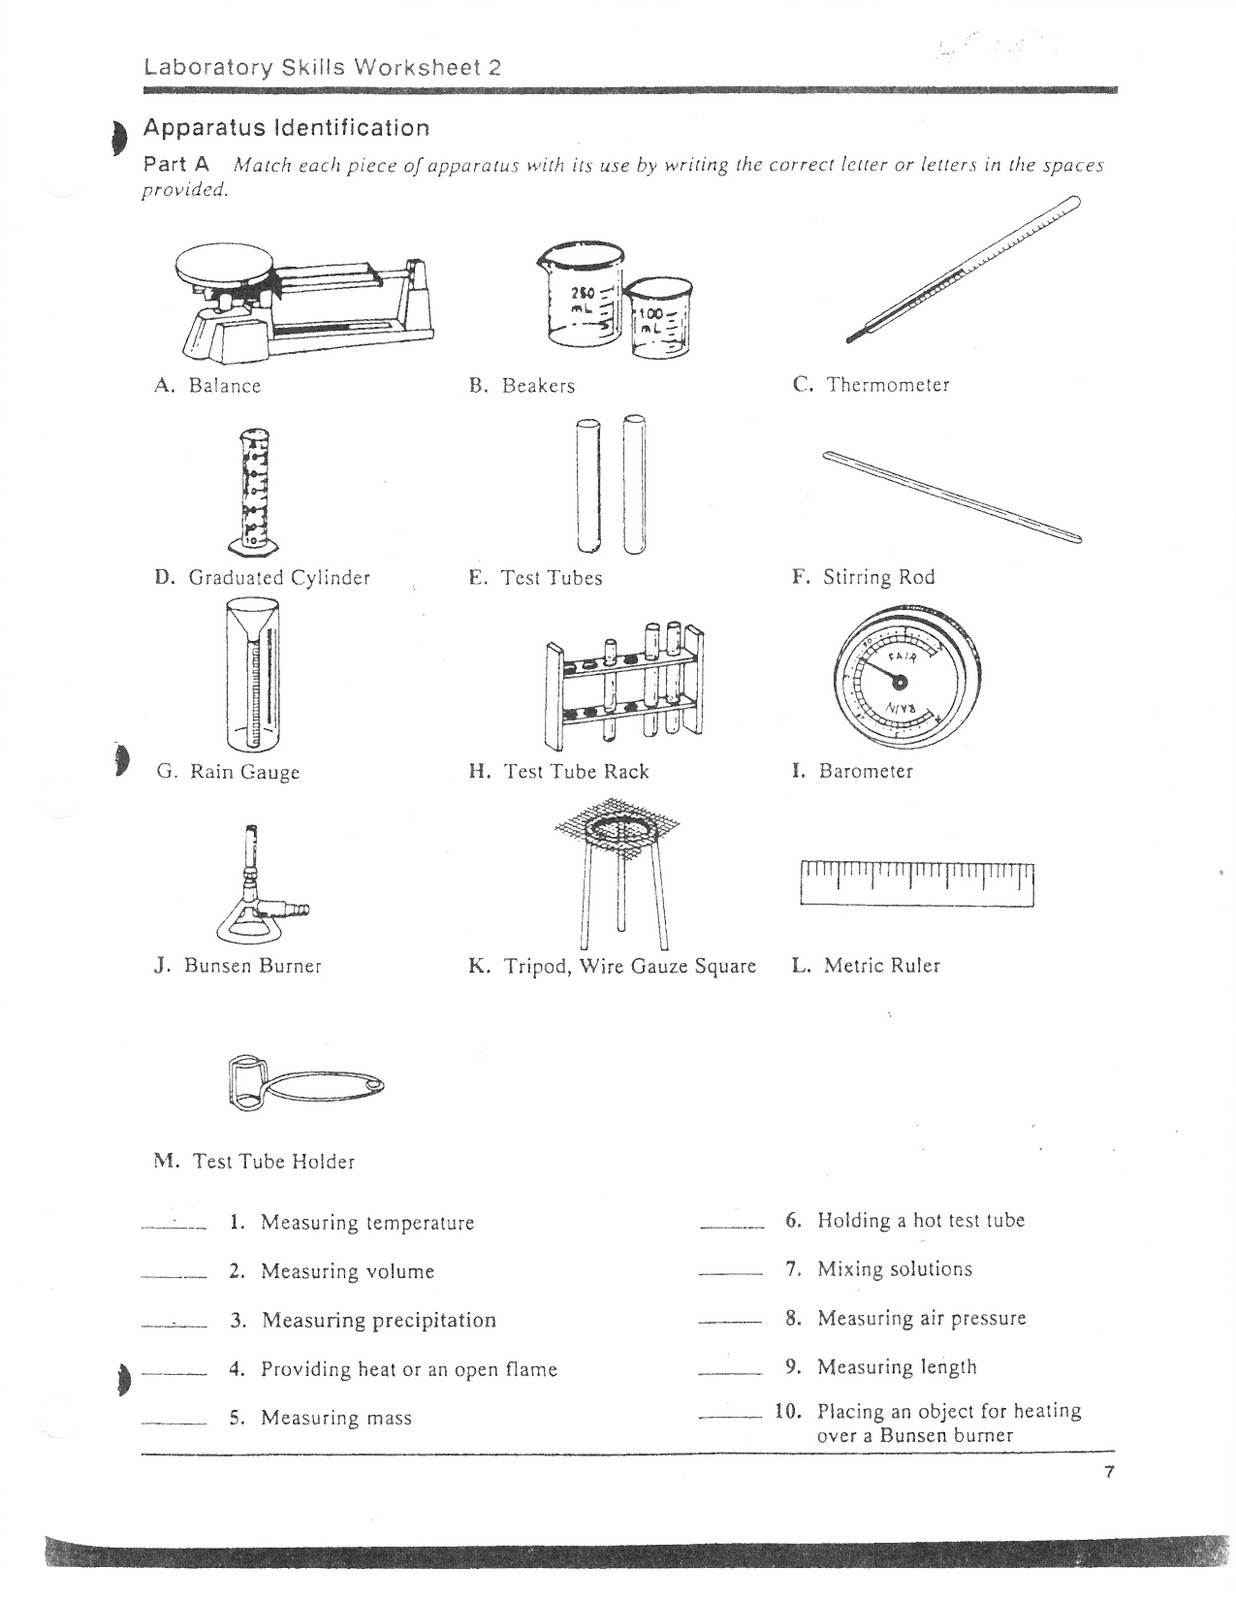 Worksheets Laboratory Equipment Worksheet science lab equipment worksheet learn and their uses instruments